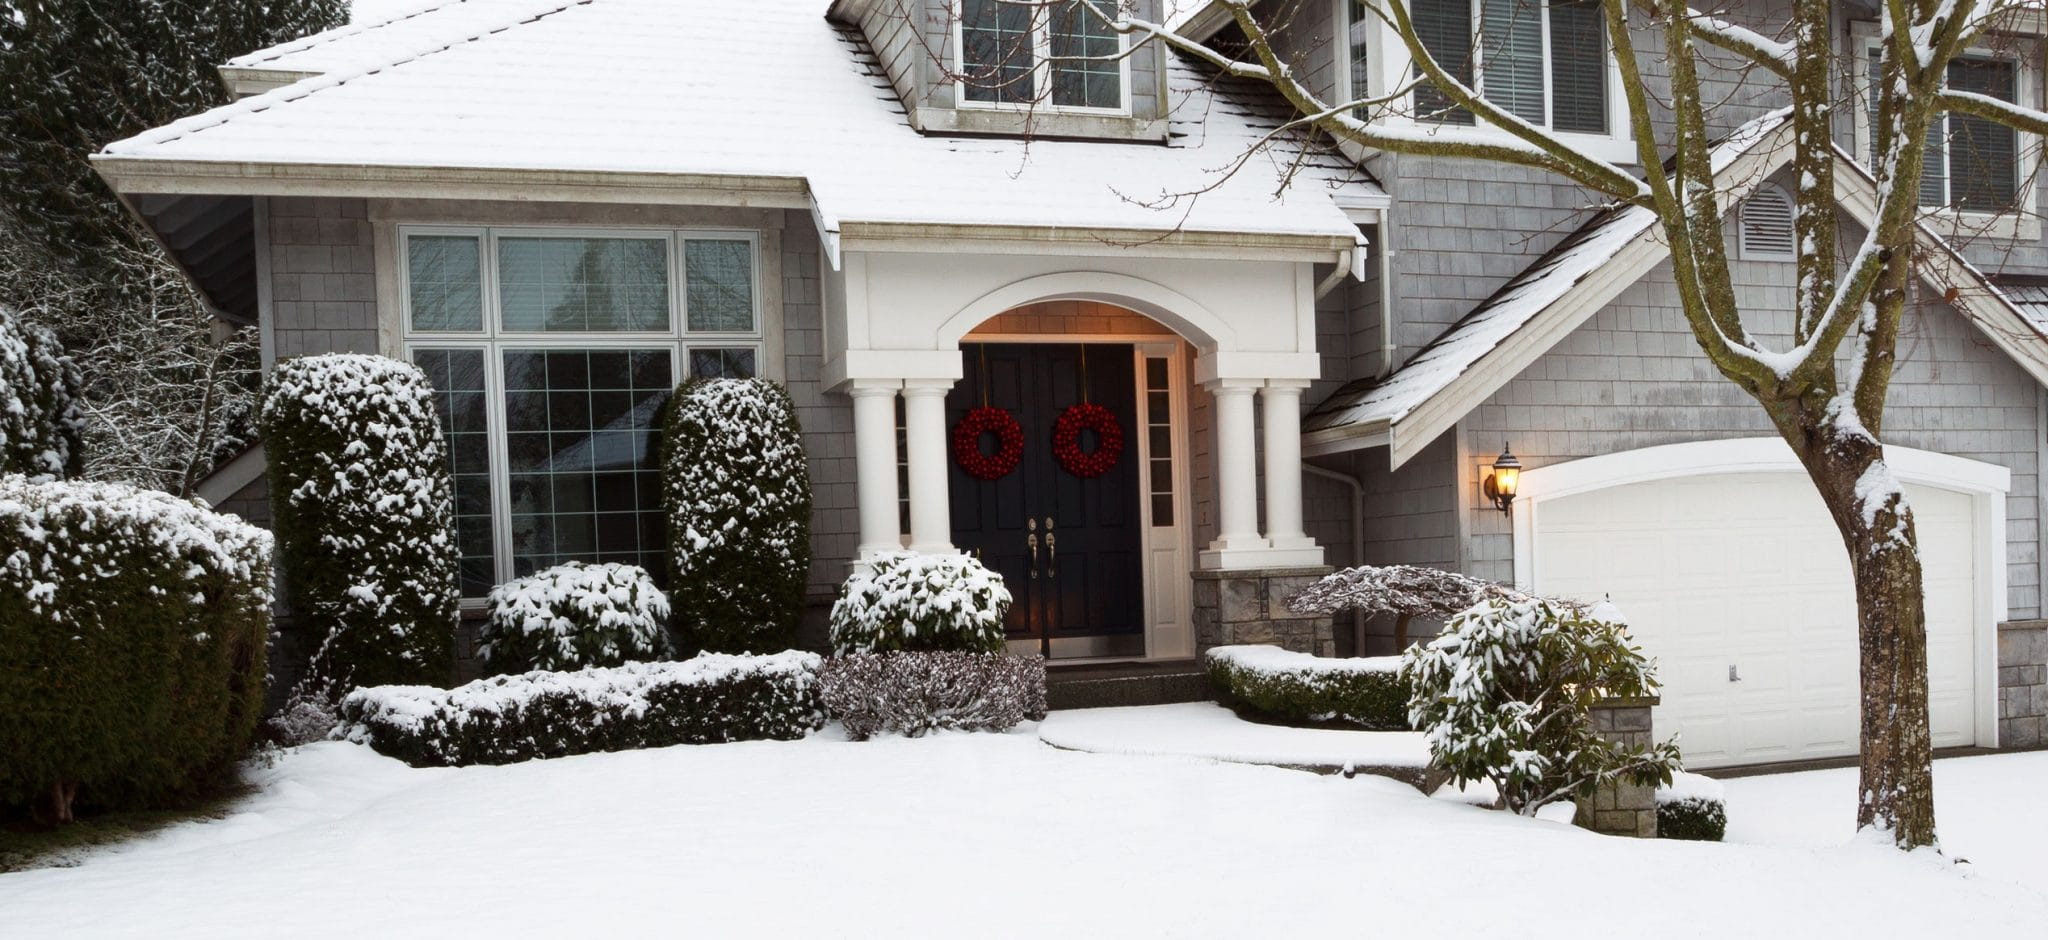 Exterior of a home after snowfall